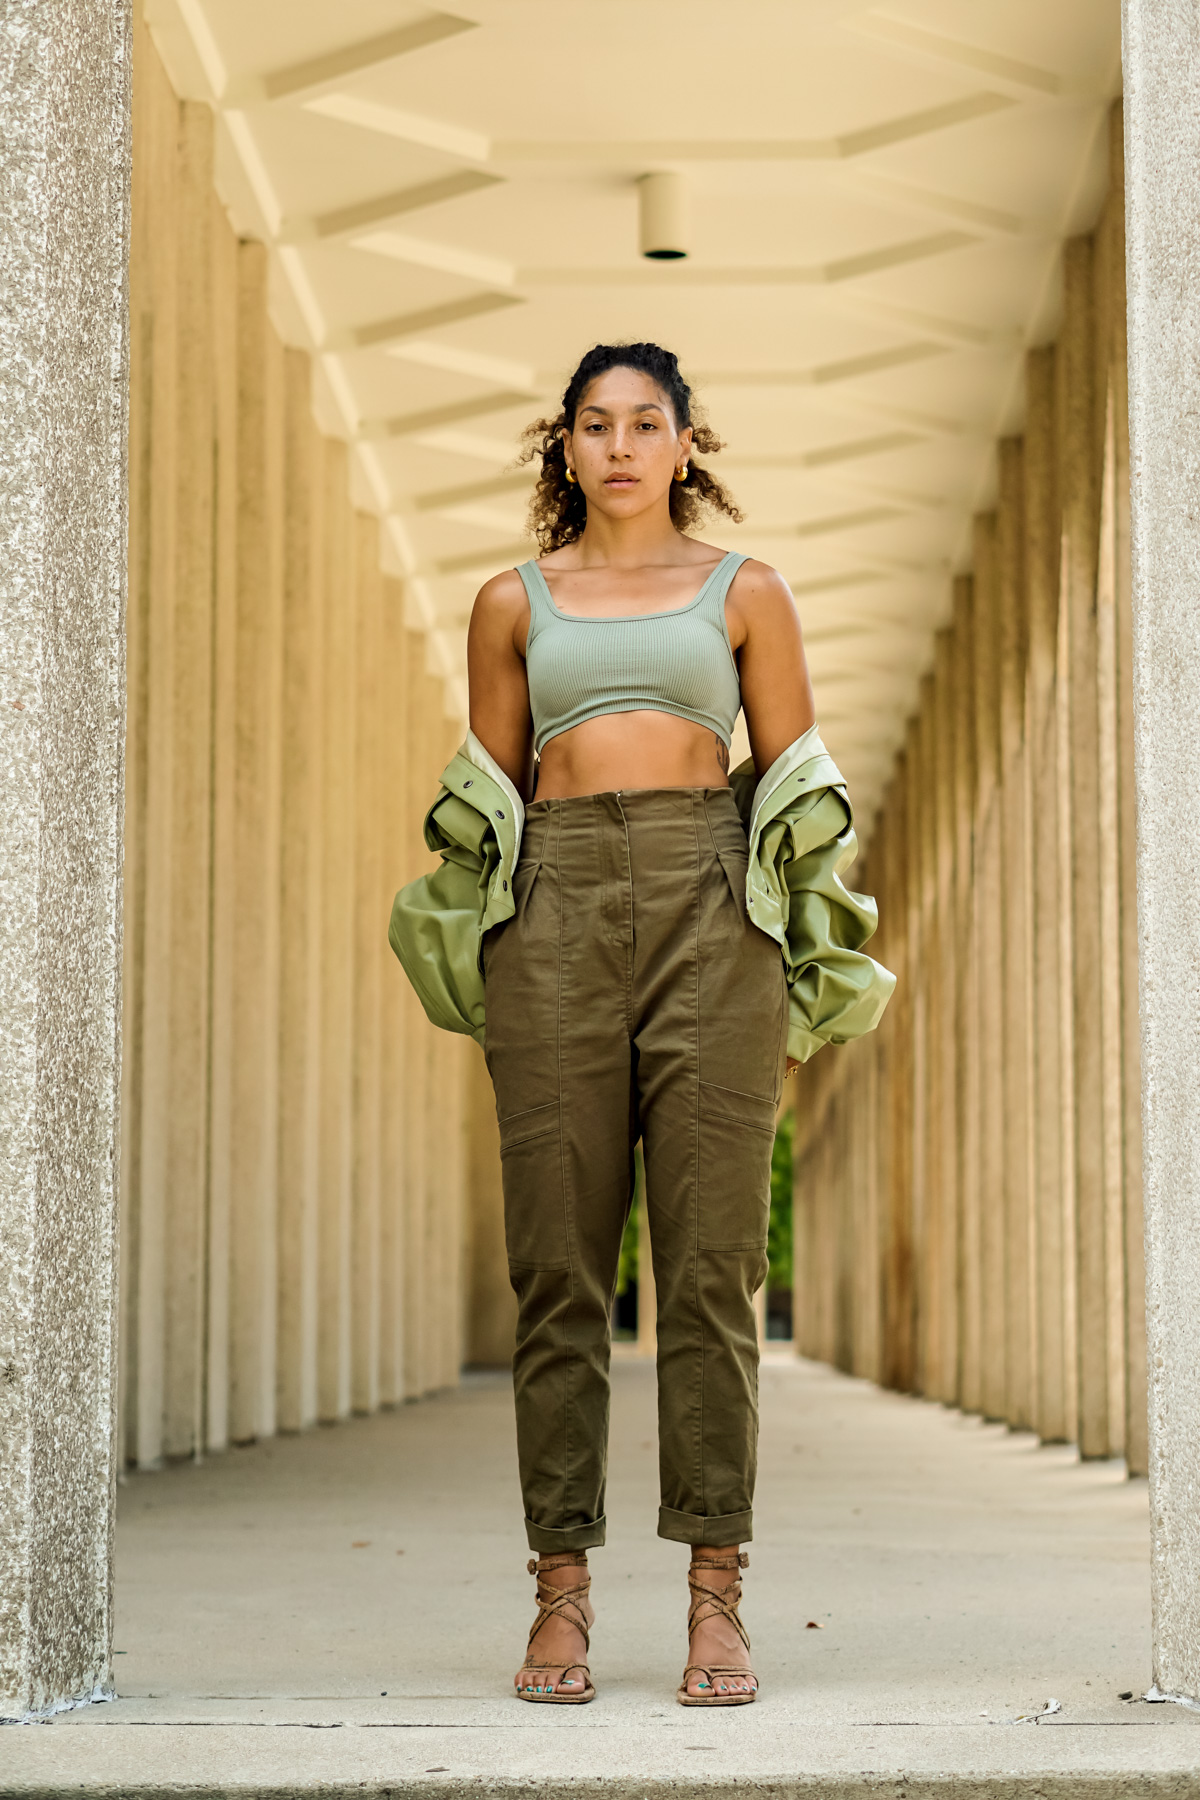 green pants outfit, chic fall outfit ideas for women, latest fashion trends for women, black fashion bloggers inspiration, affordable green pants outfit ideas black girl